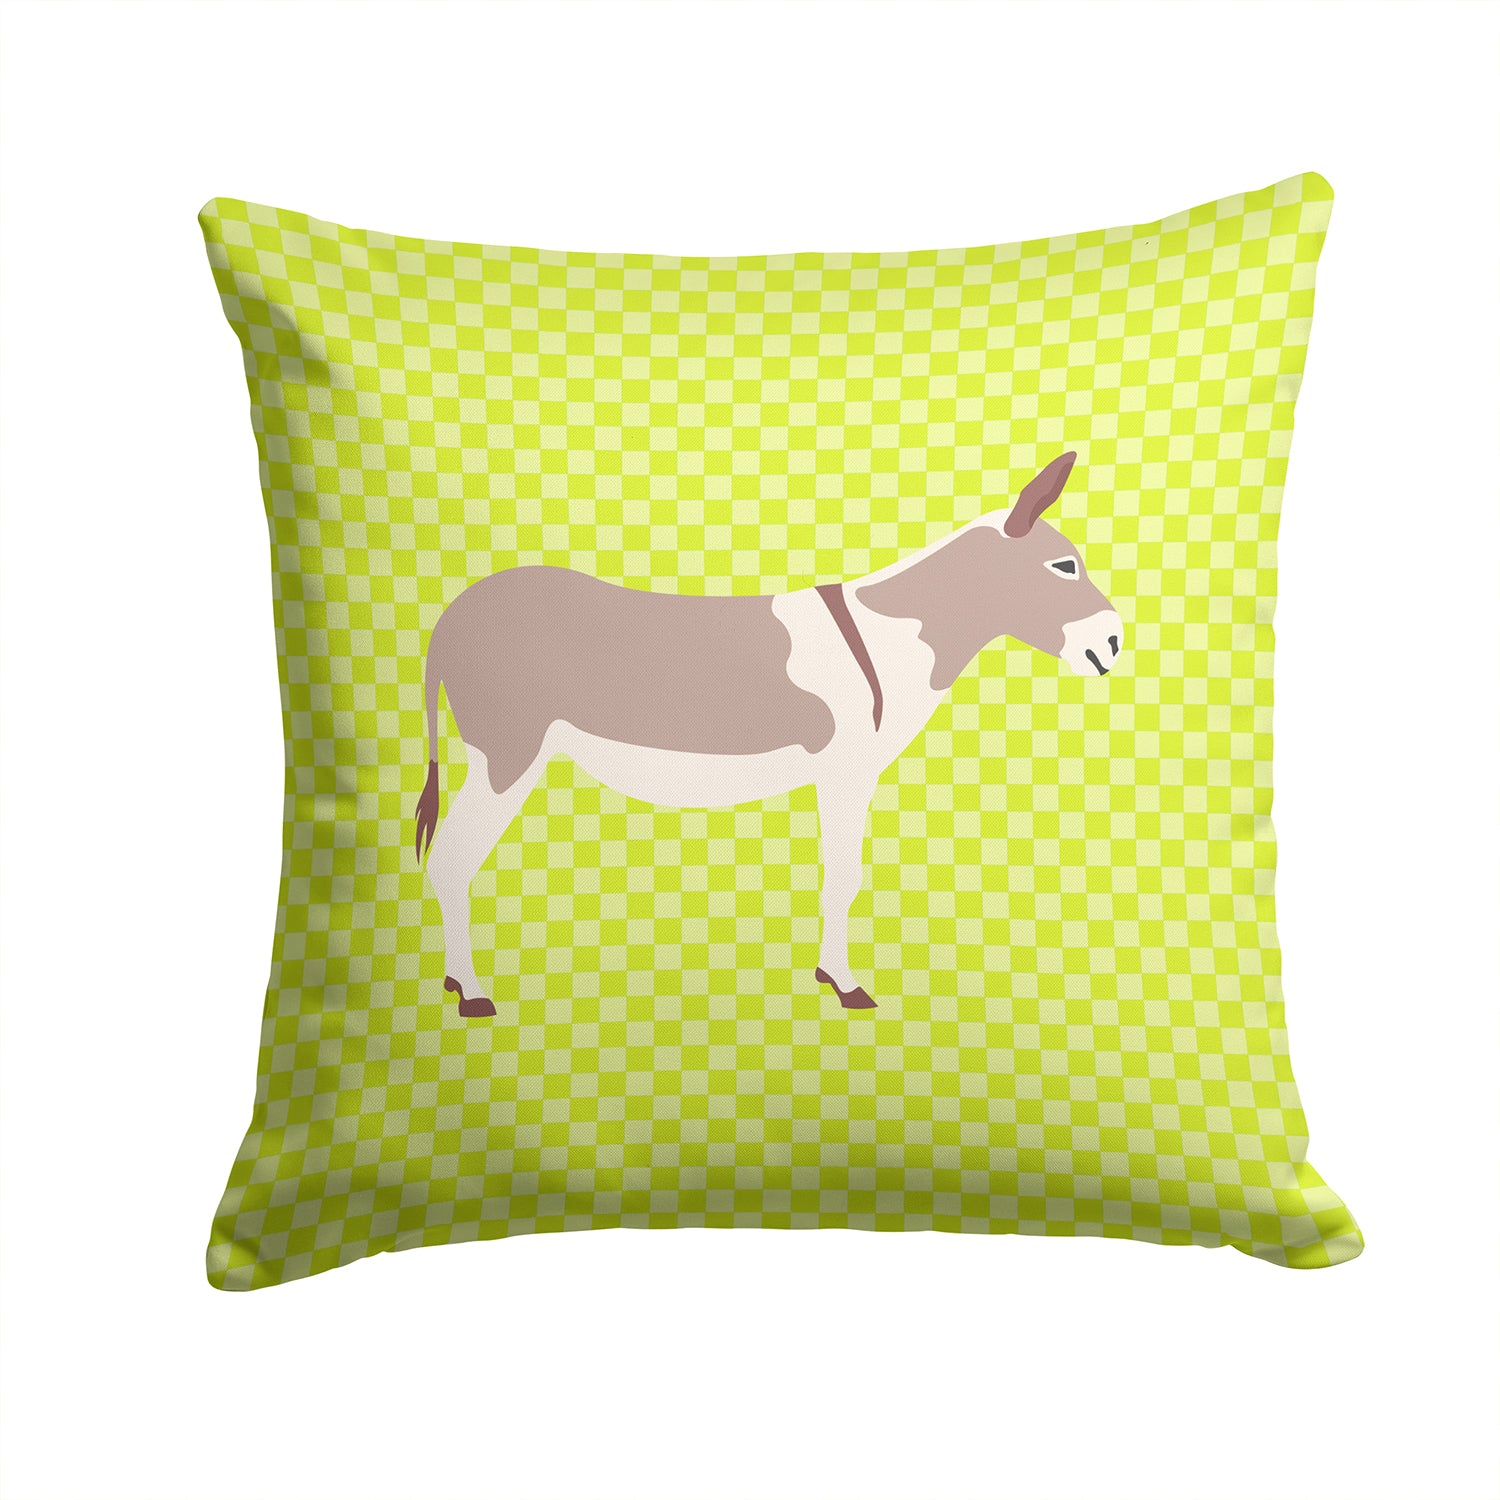 Australian Teamster Donkey Green Fabric Decorative Pillow BB7672PW1414 by Caroline's Treasures